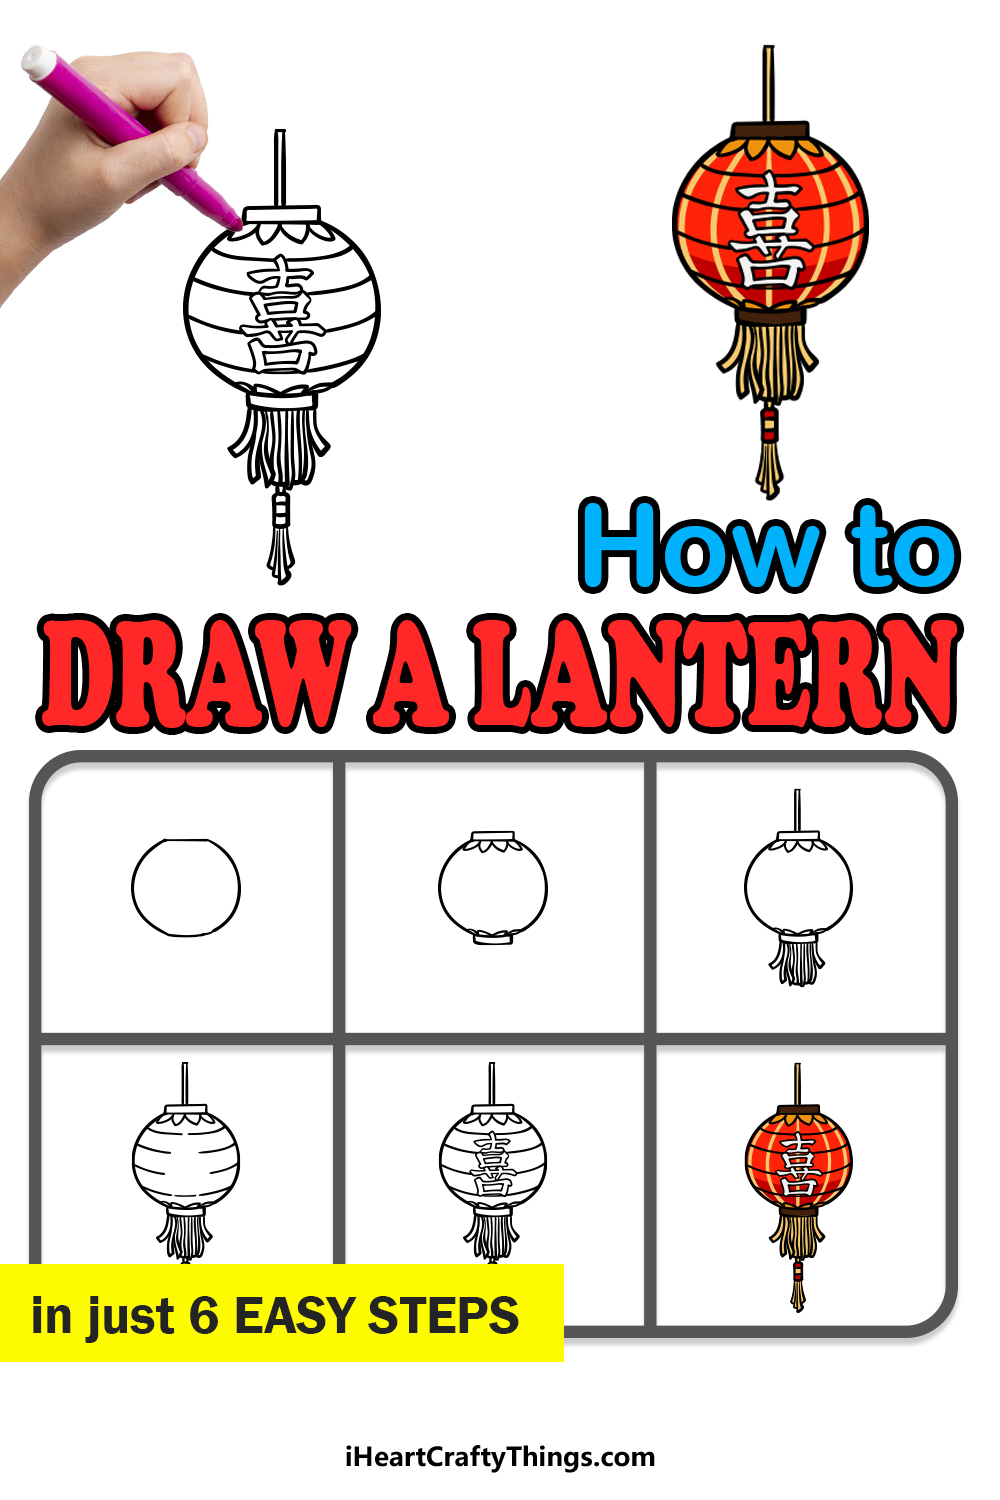 how to draw a lantern in 6 easy steps